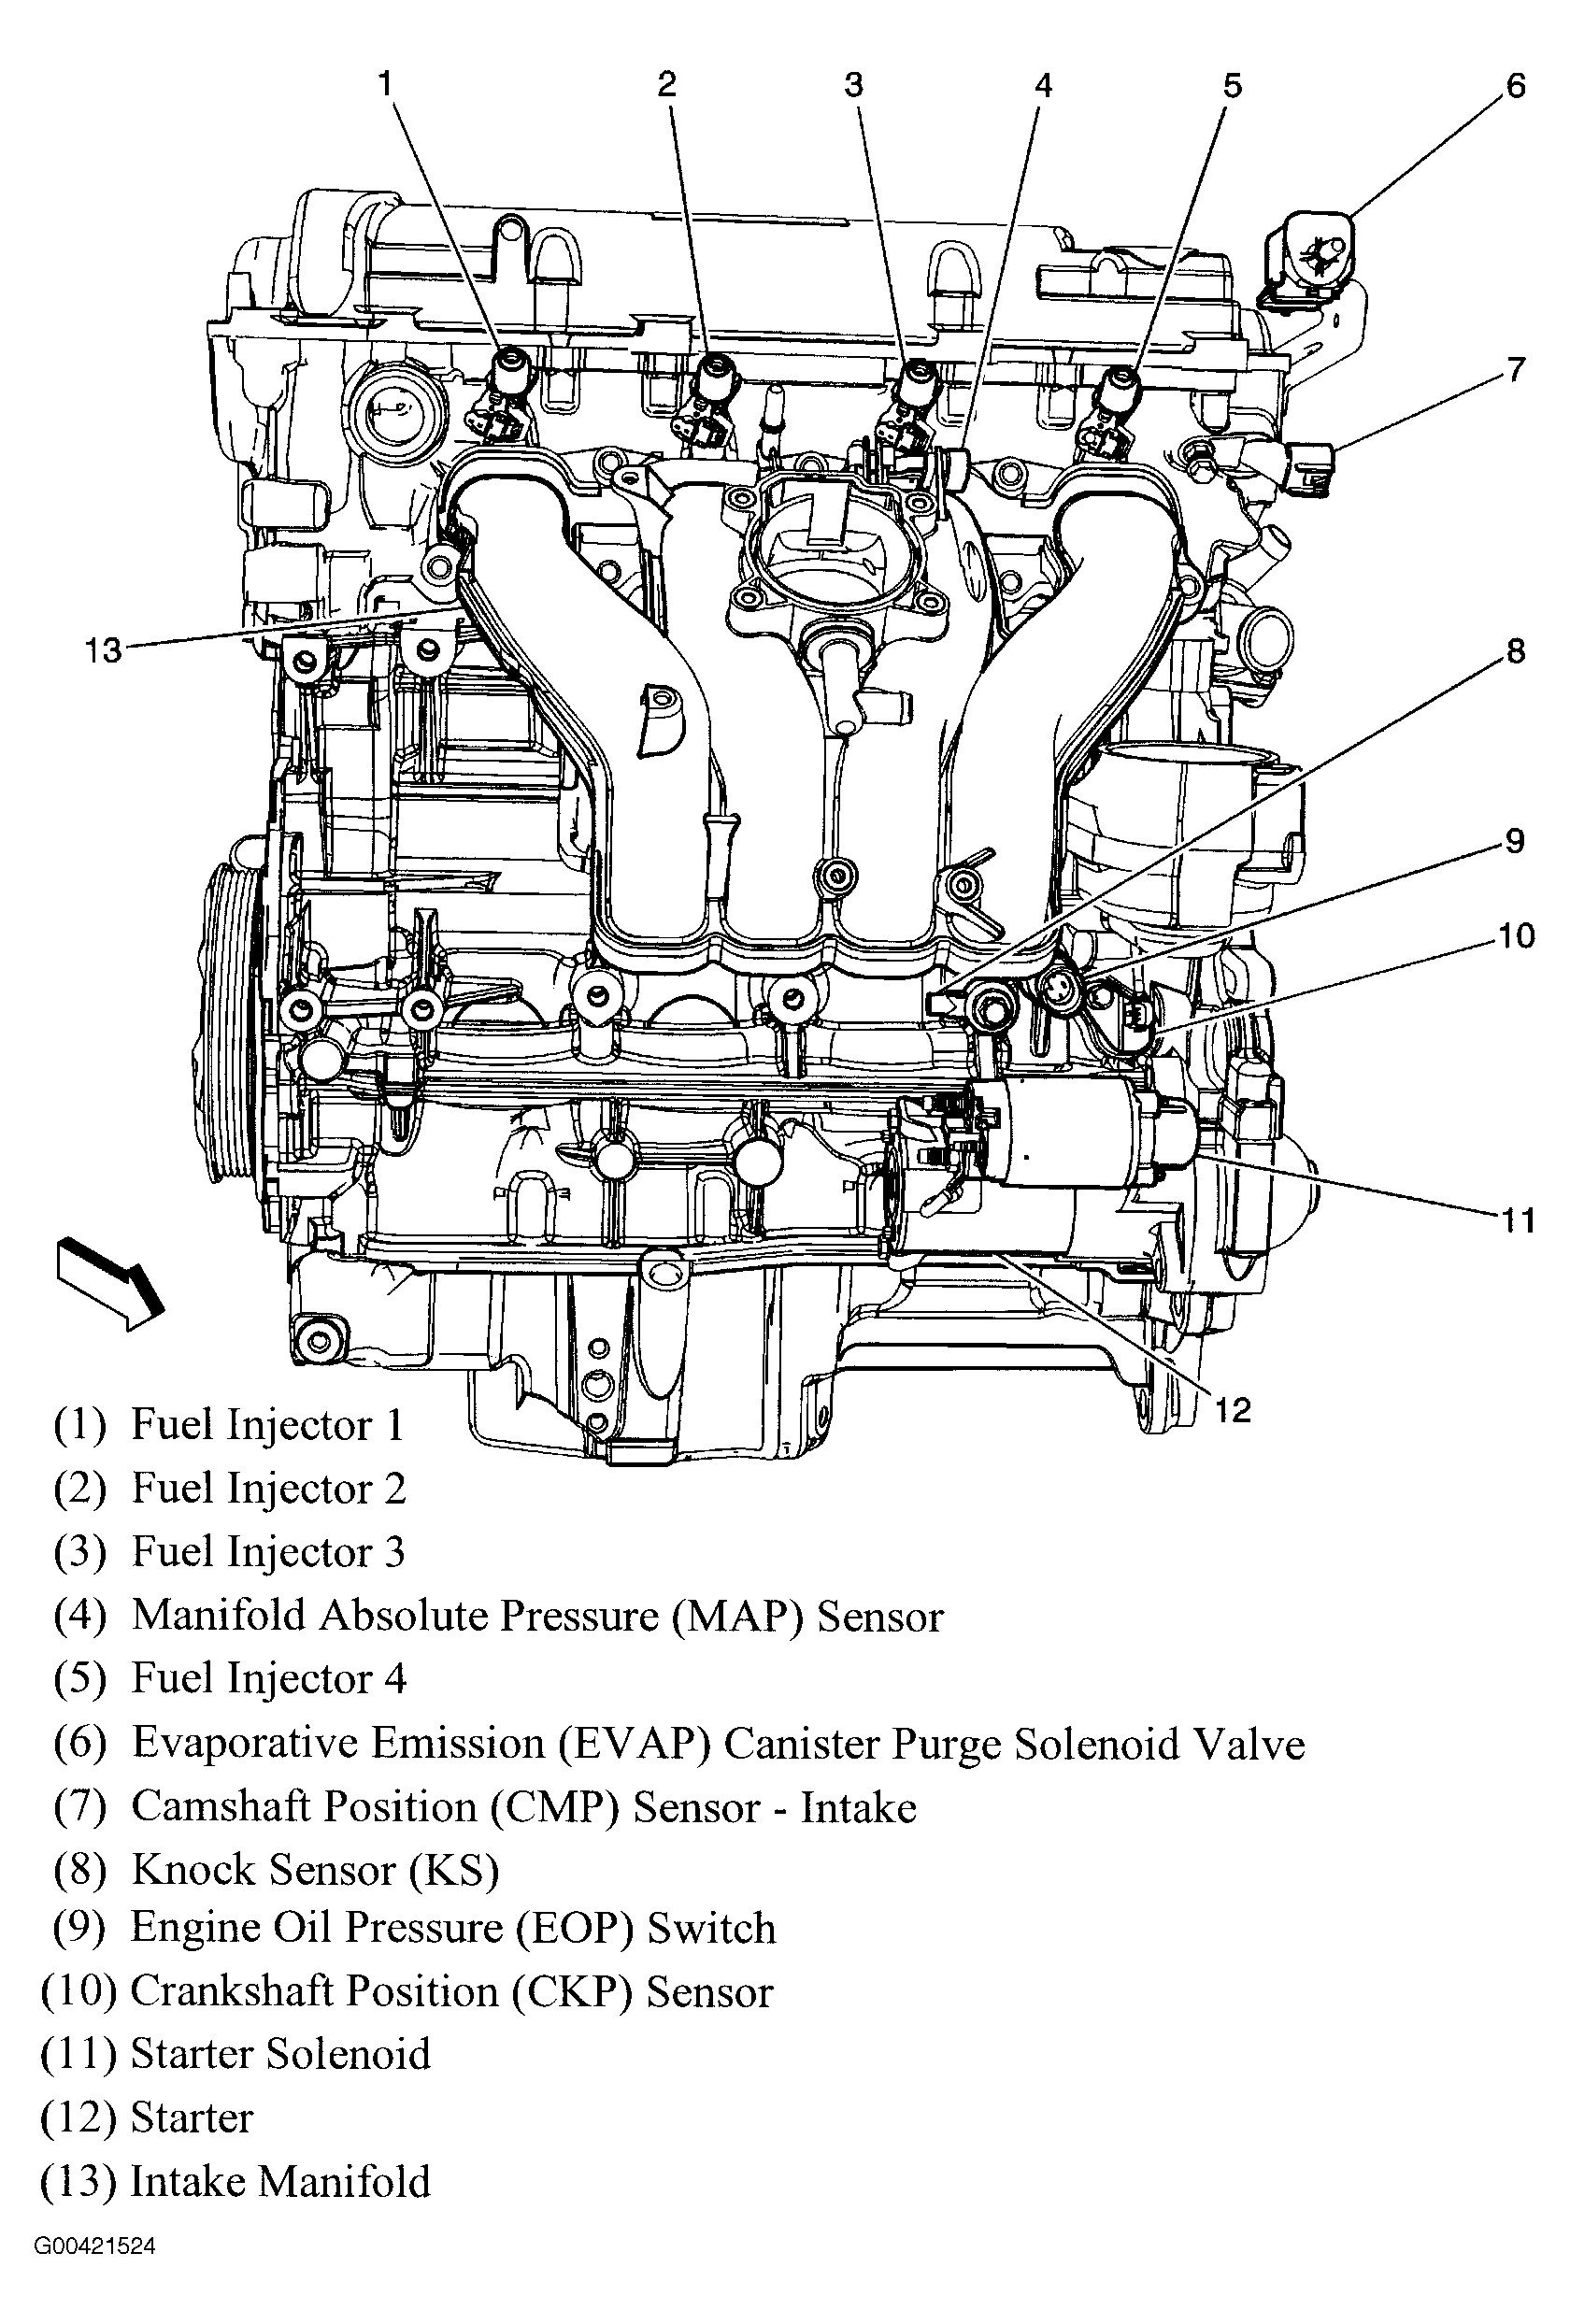 2009 Chevrolet Hhr Crankshaft Sensor on chevrolet 2011 hhr engine diagram